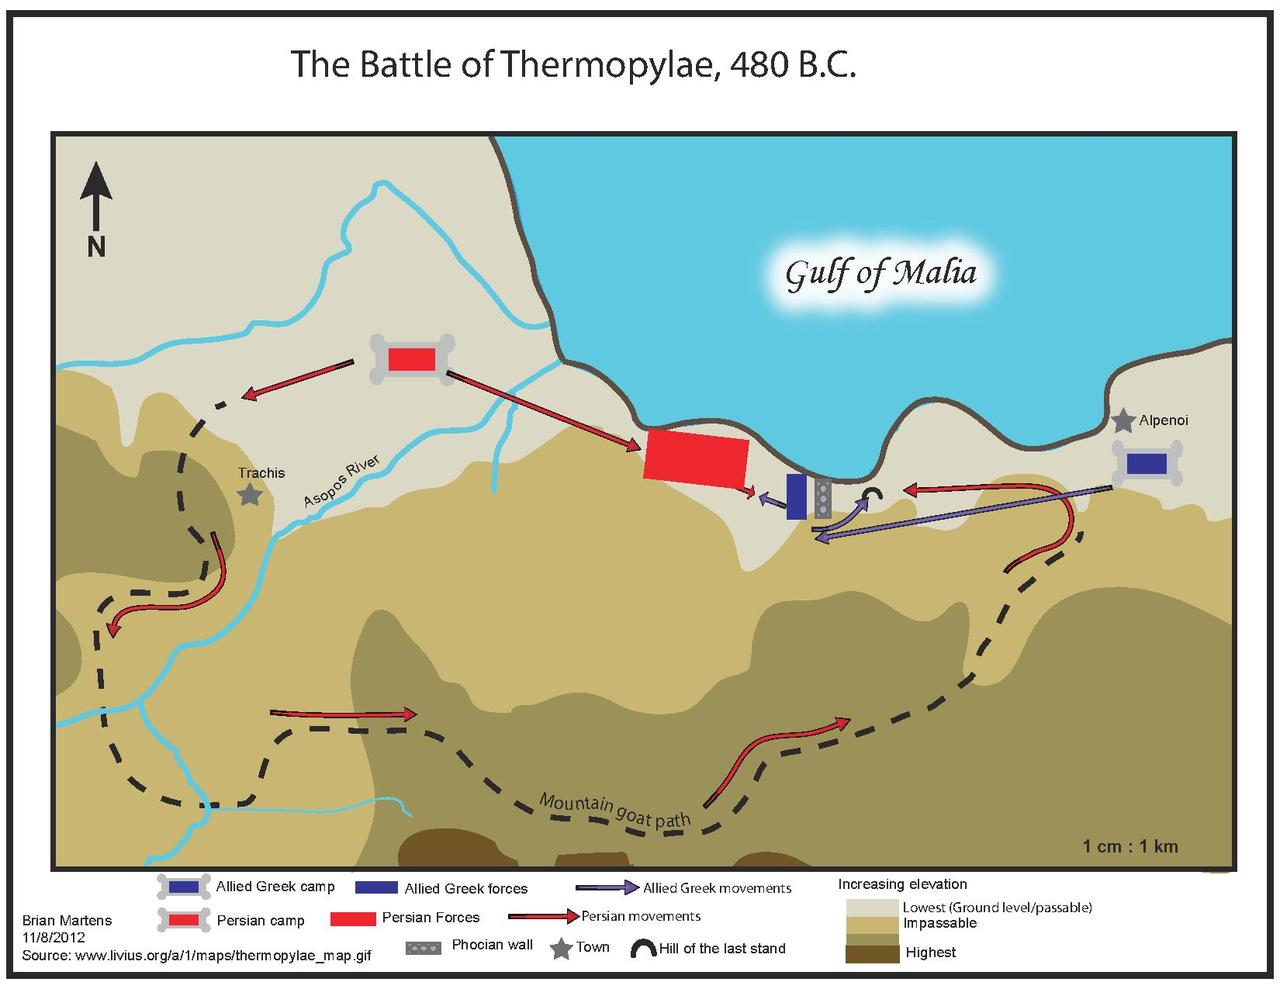 The Battle of Cannes - one of the largest battles of antiquity